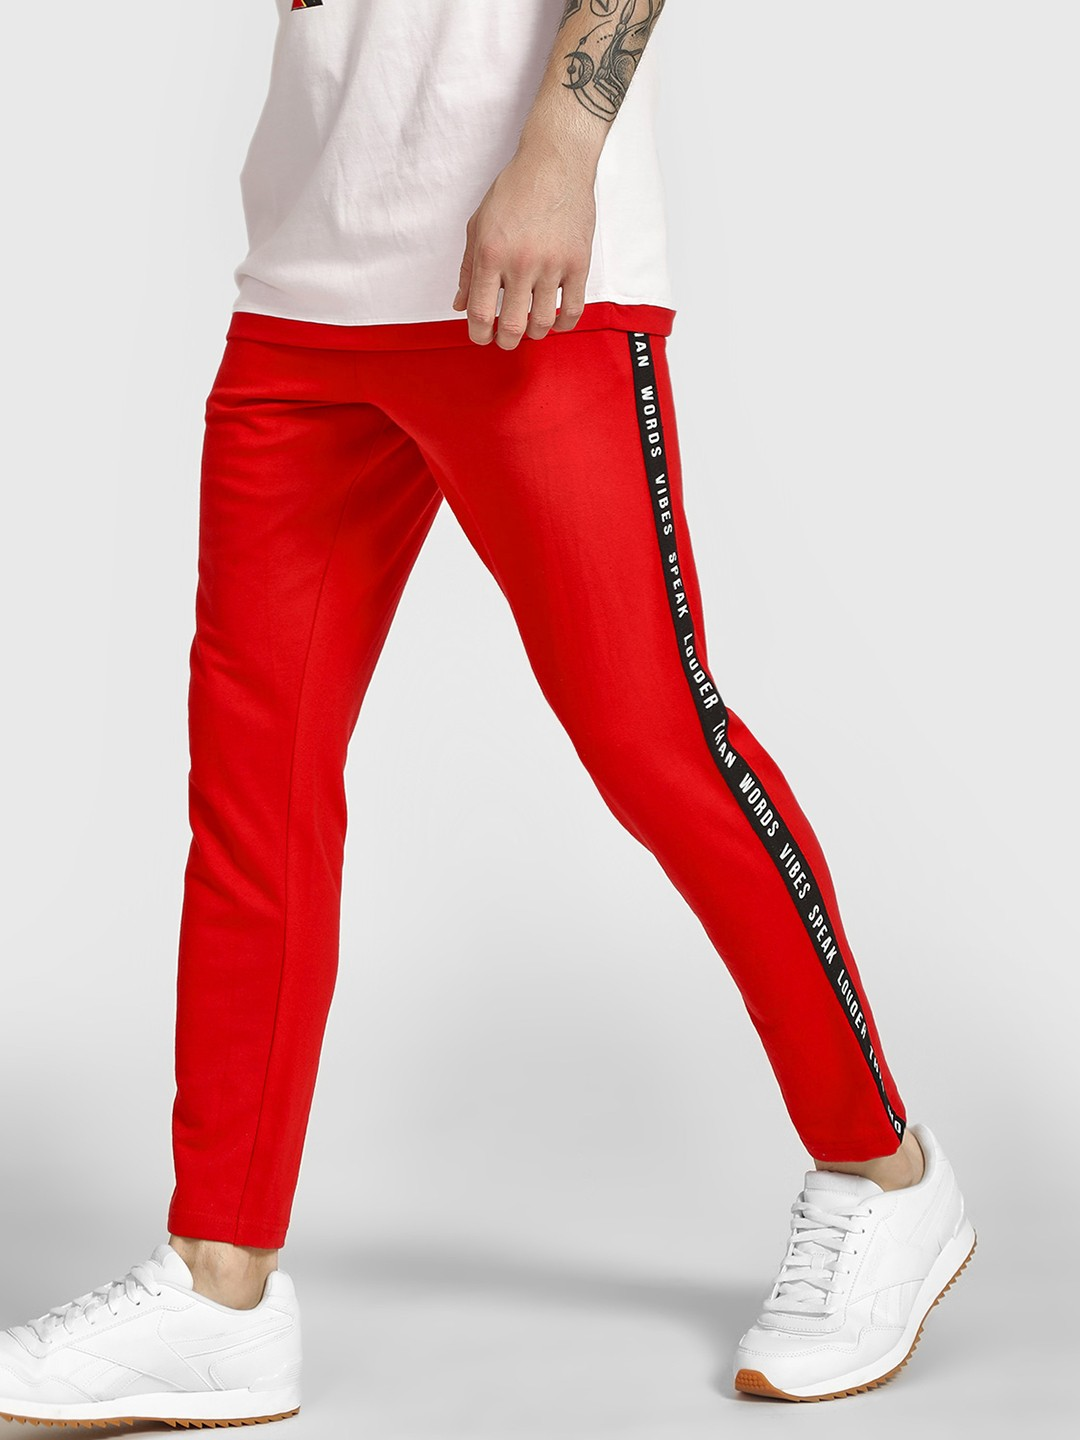 Garcon Red Slogan Print Side Tape Joggers 1